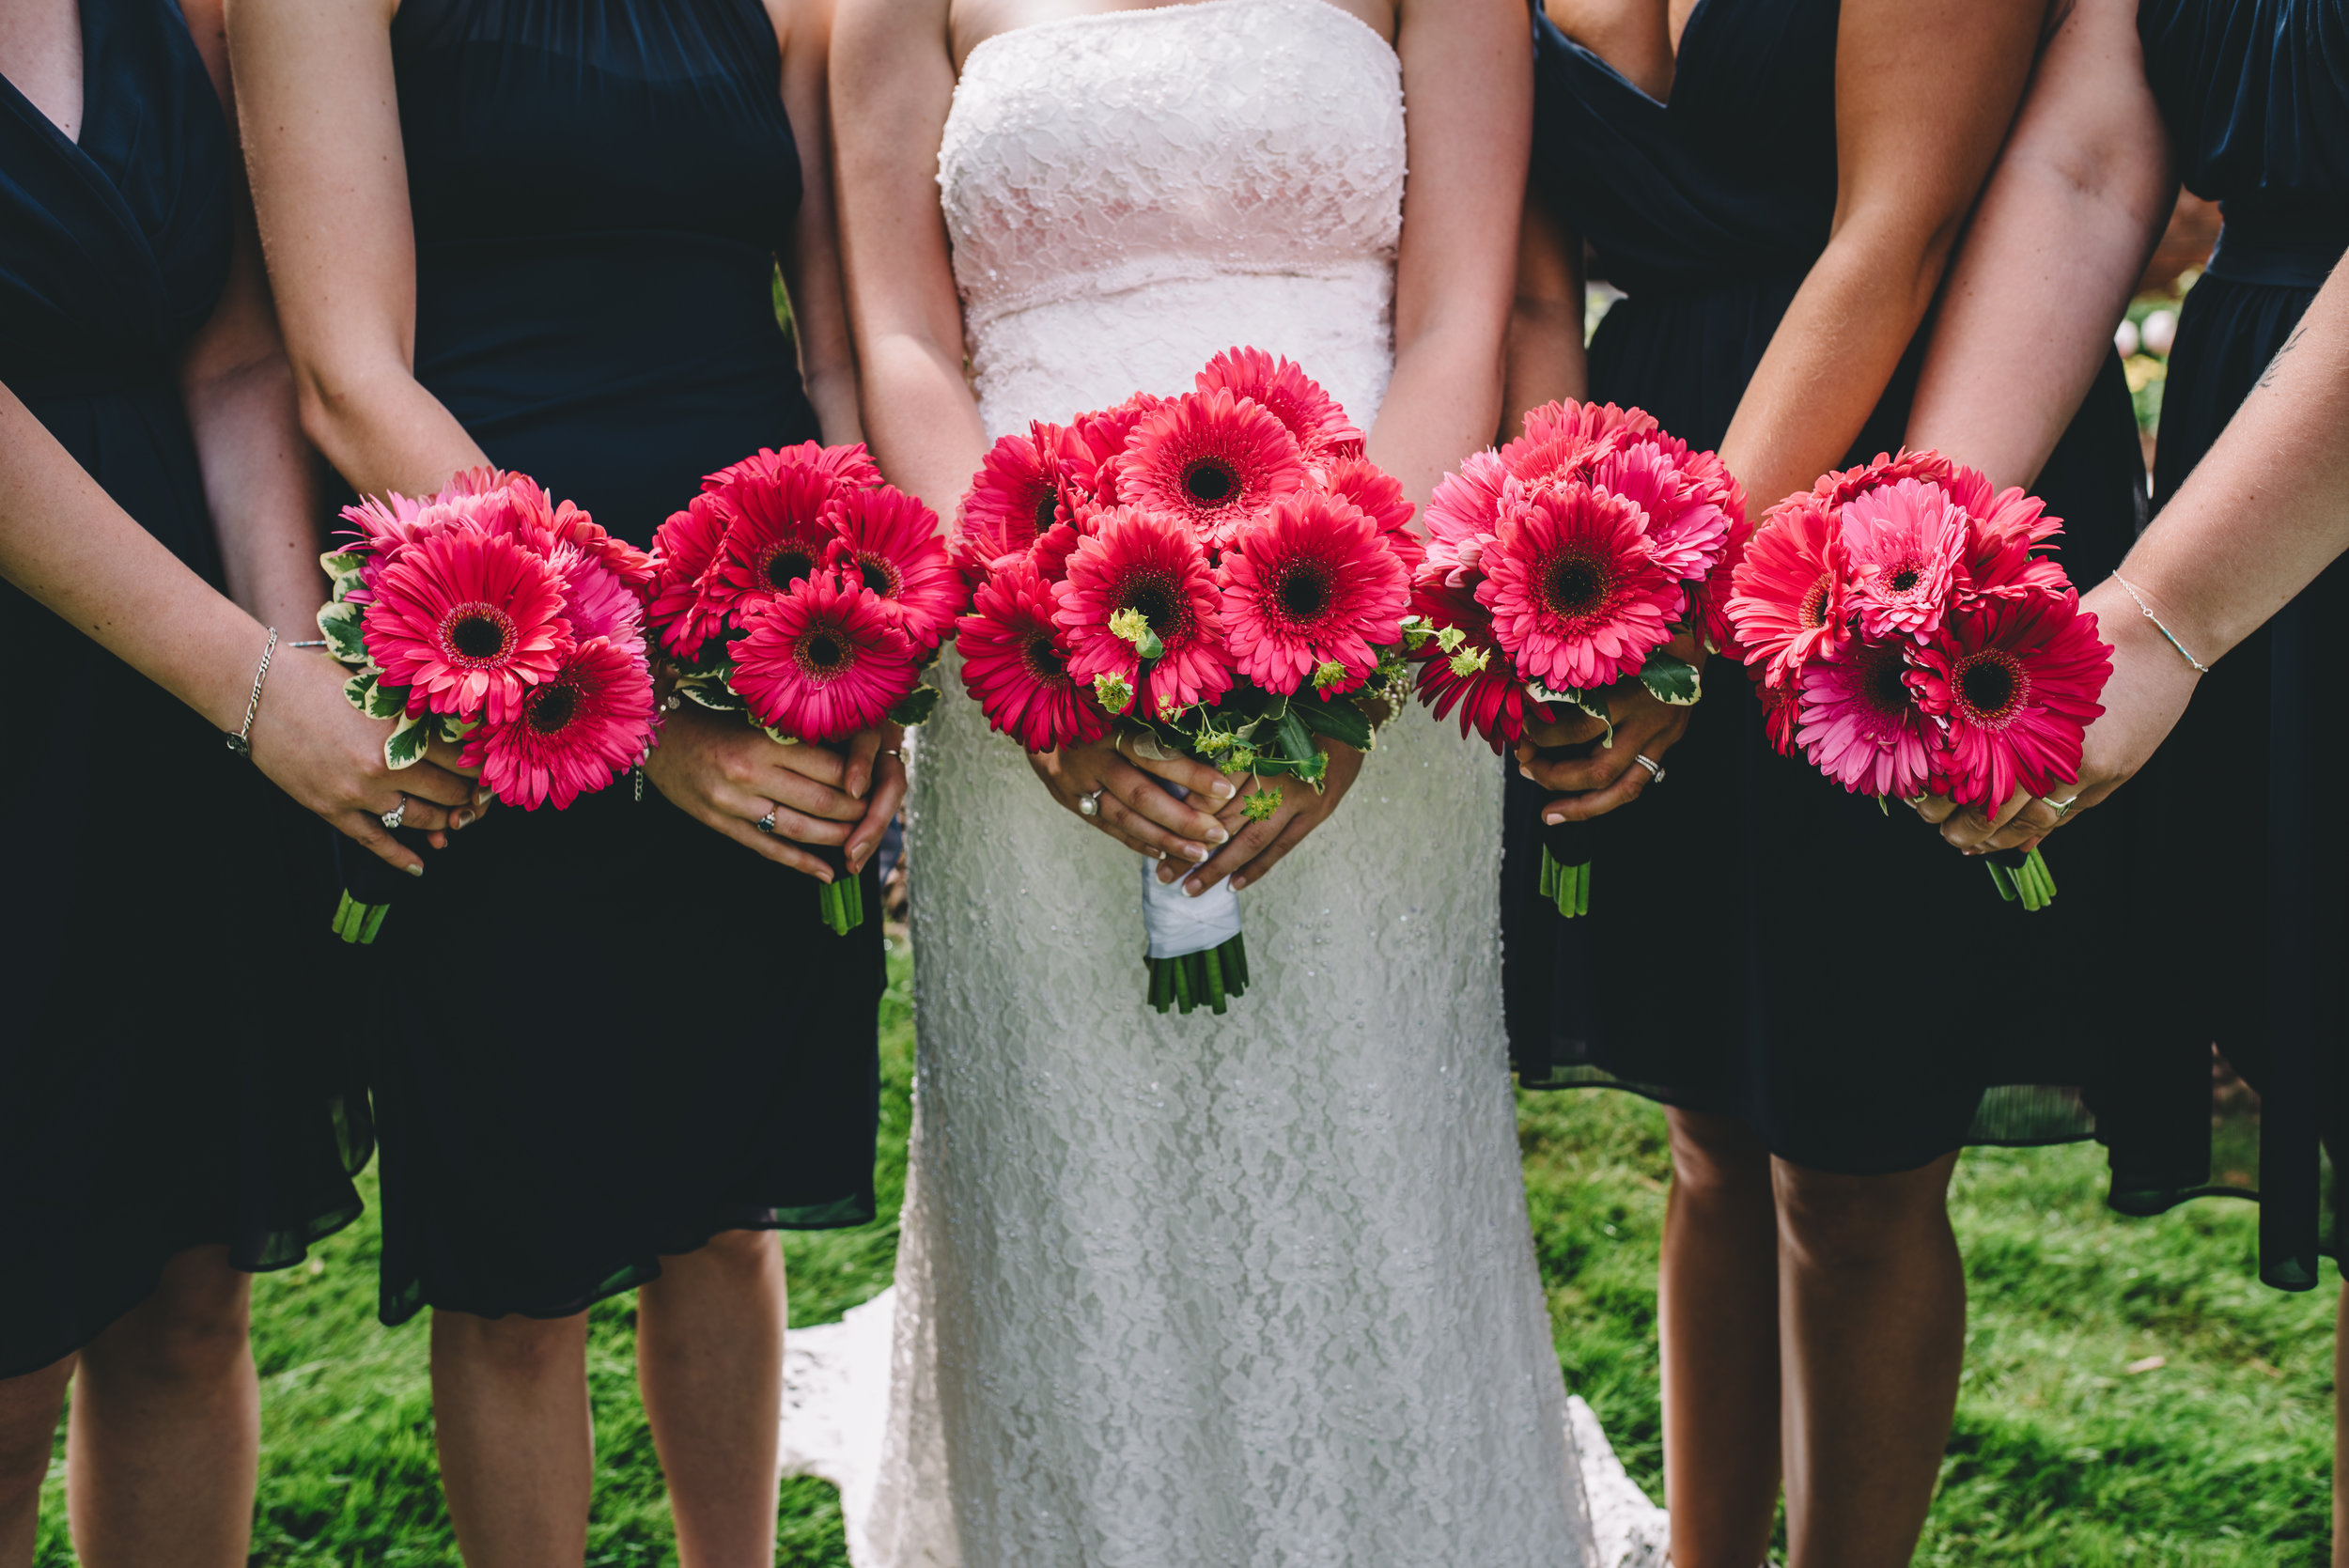 Bridesmaid's boquets Mocha Tree Studios Ottawa Wedding and Engagement Photographer and Videographer Dark Moody Intimate Authentic Modern Romantic Cinematic Best Candid ALEX + BRIAN: THE MOUNT, PETERBOROUGH, ON